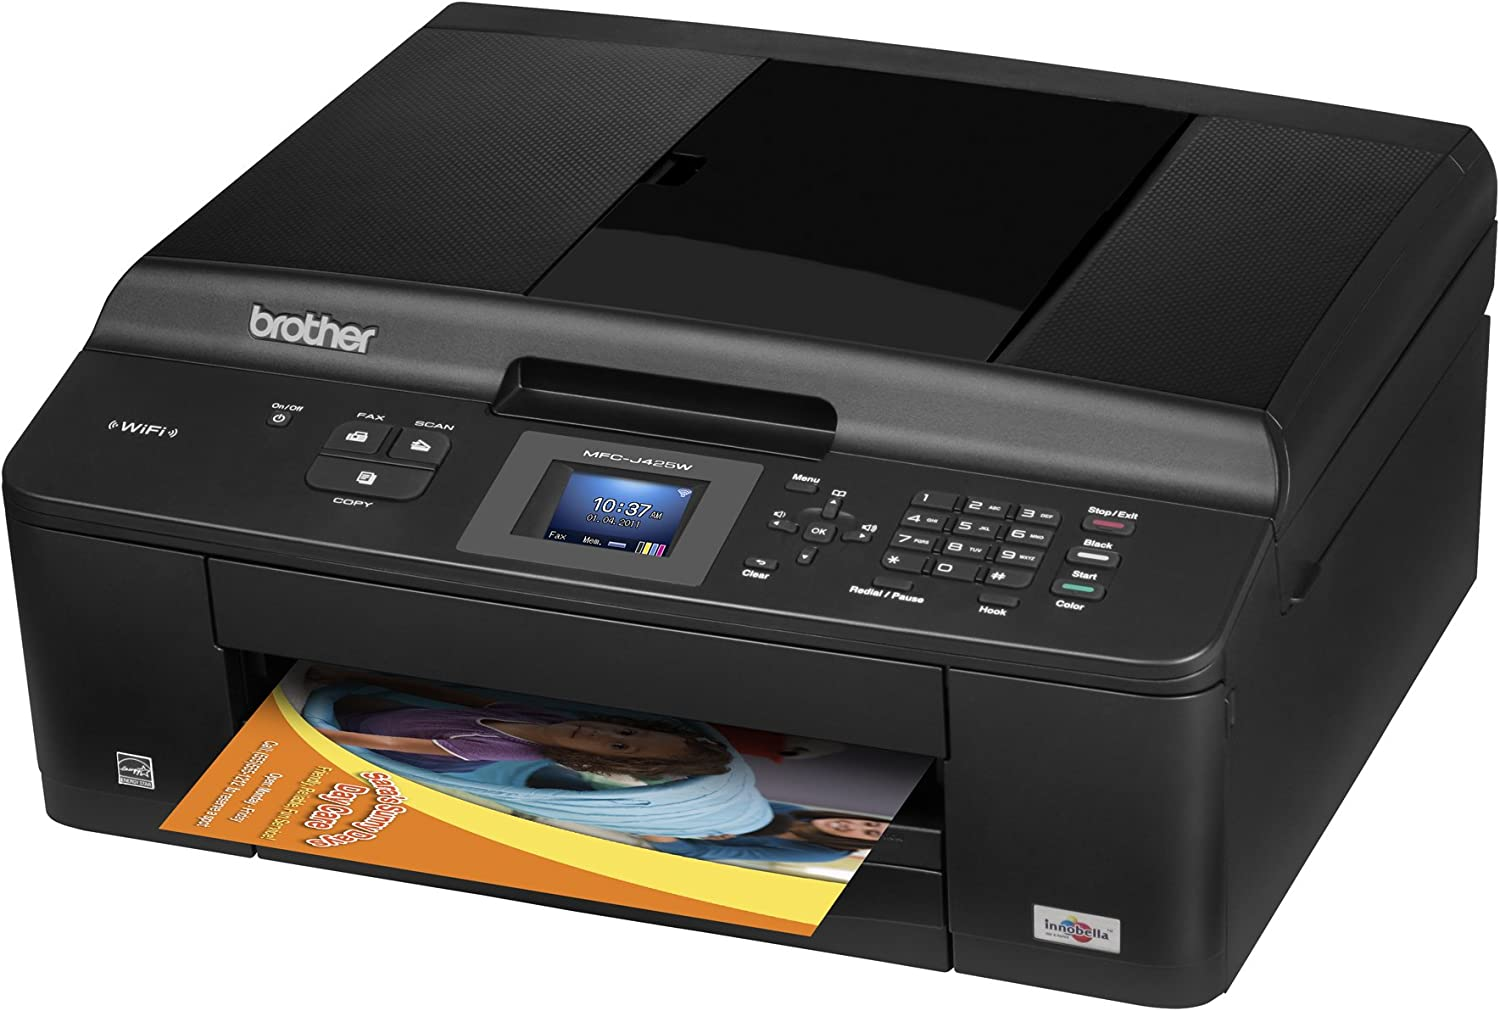 Brother Printer MFCJ425W Wireless Color Photo Printer with Scanner, Copier and Fax